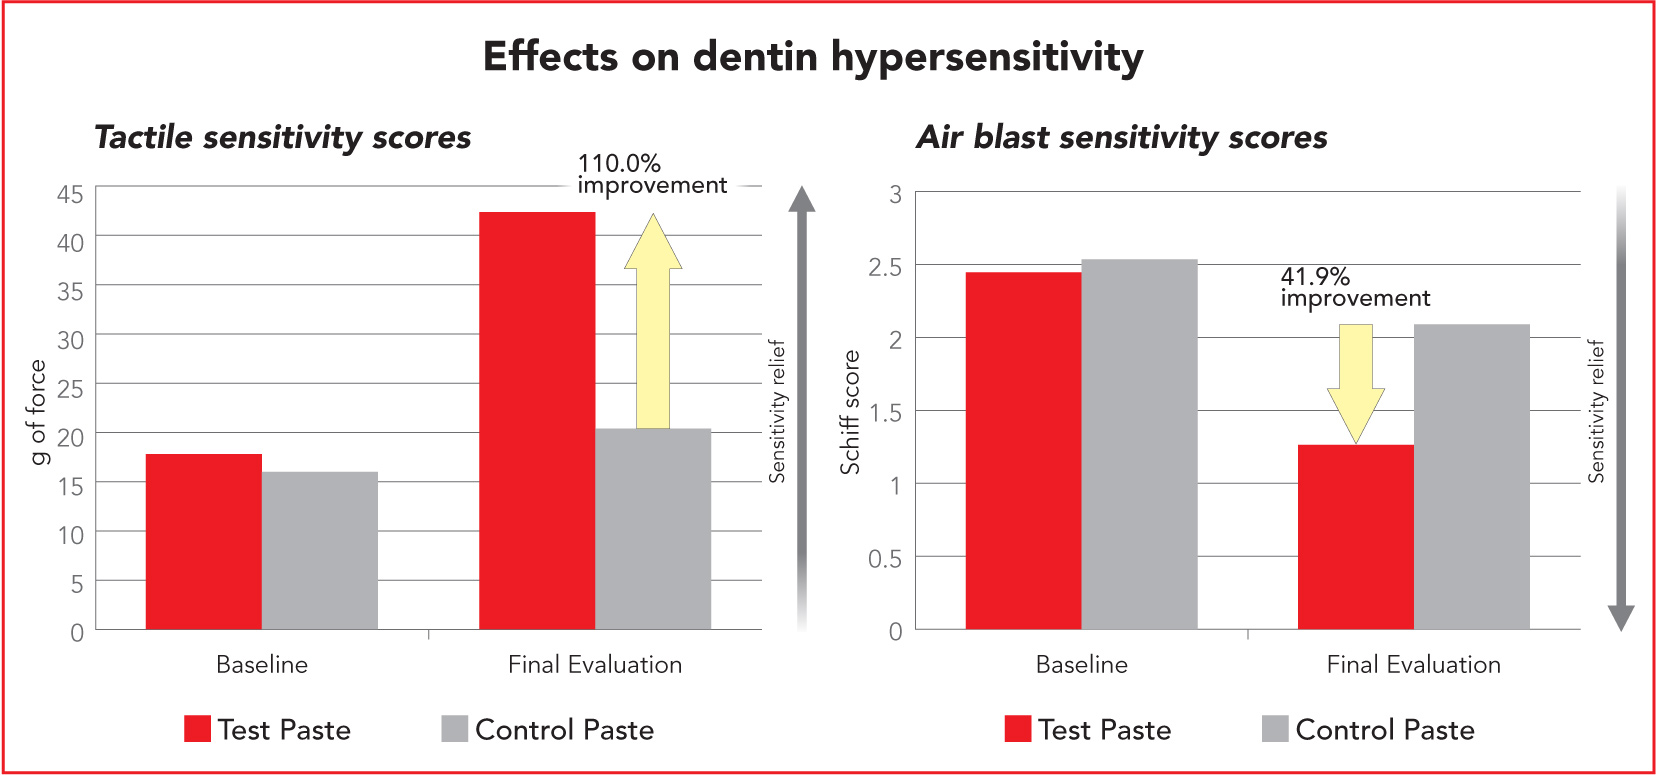 Effects on dentin hypersensitivity